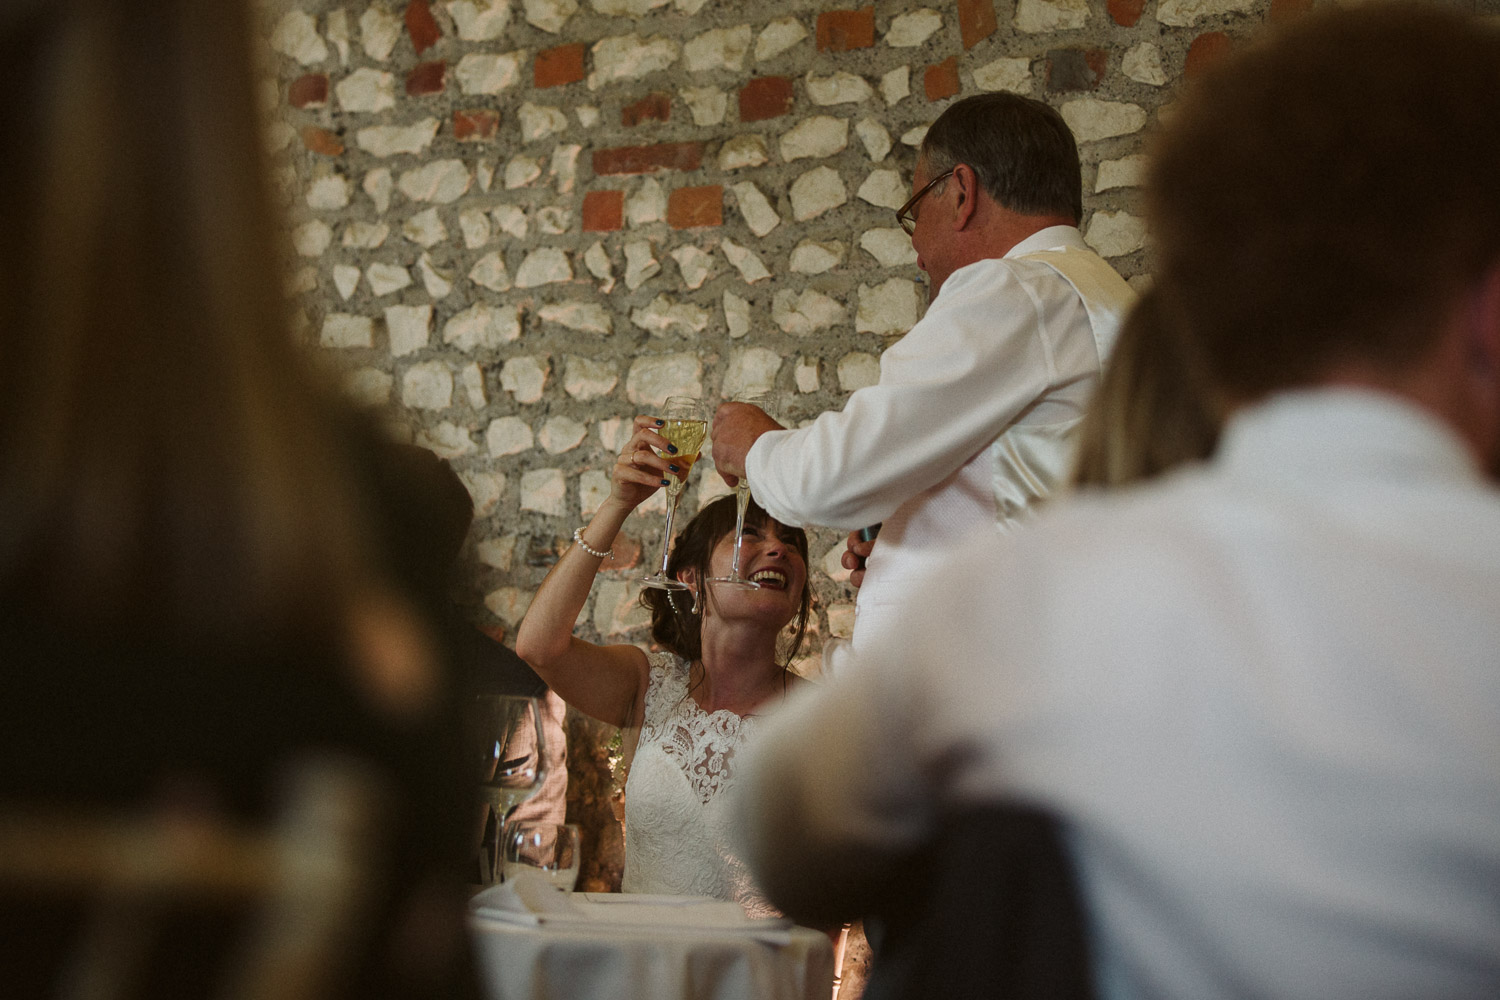 the last cheers between the bride and her father